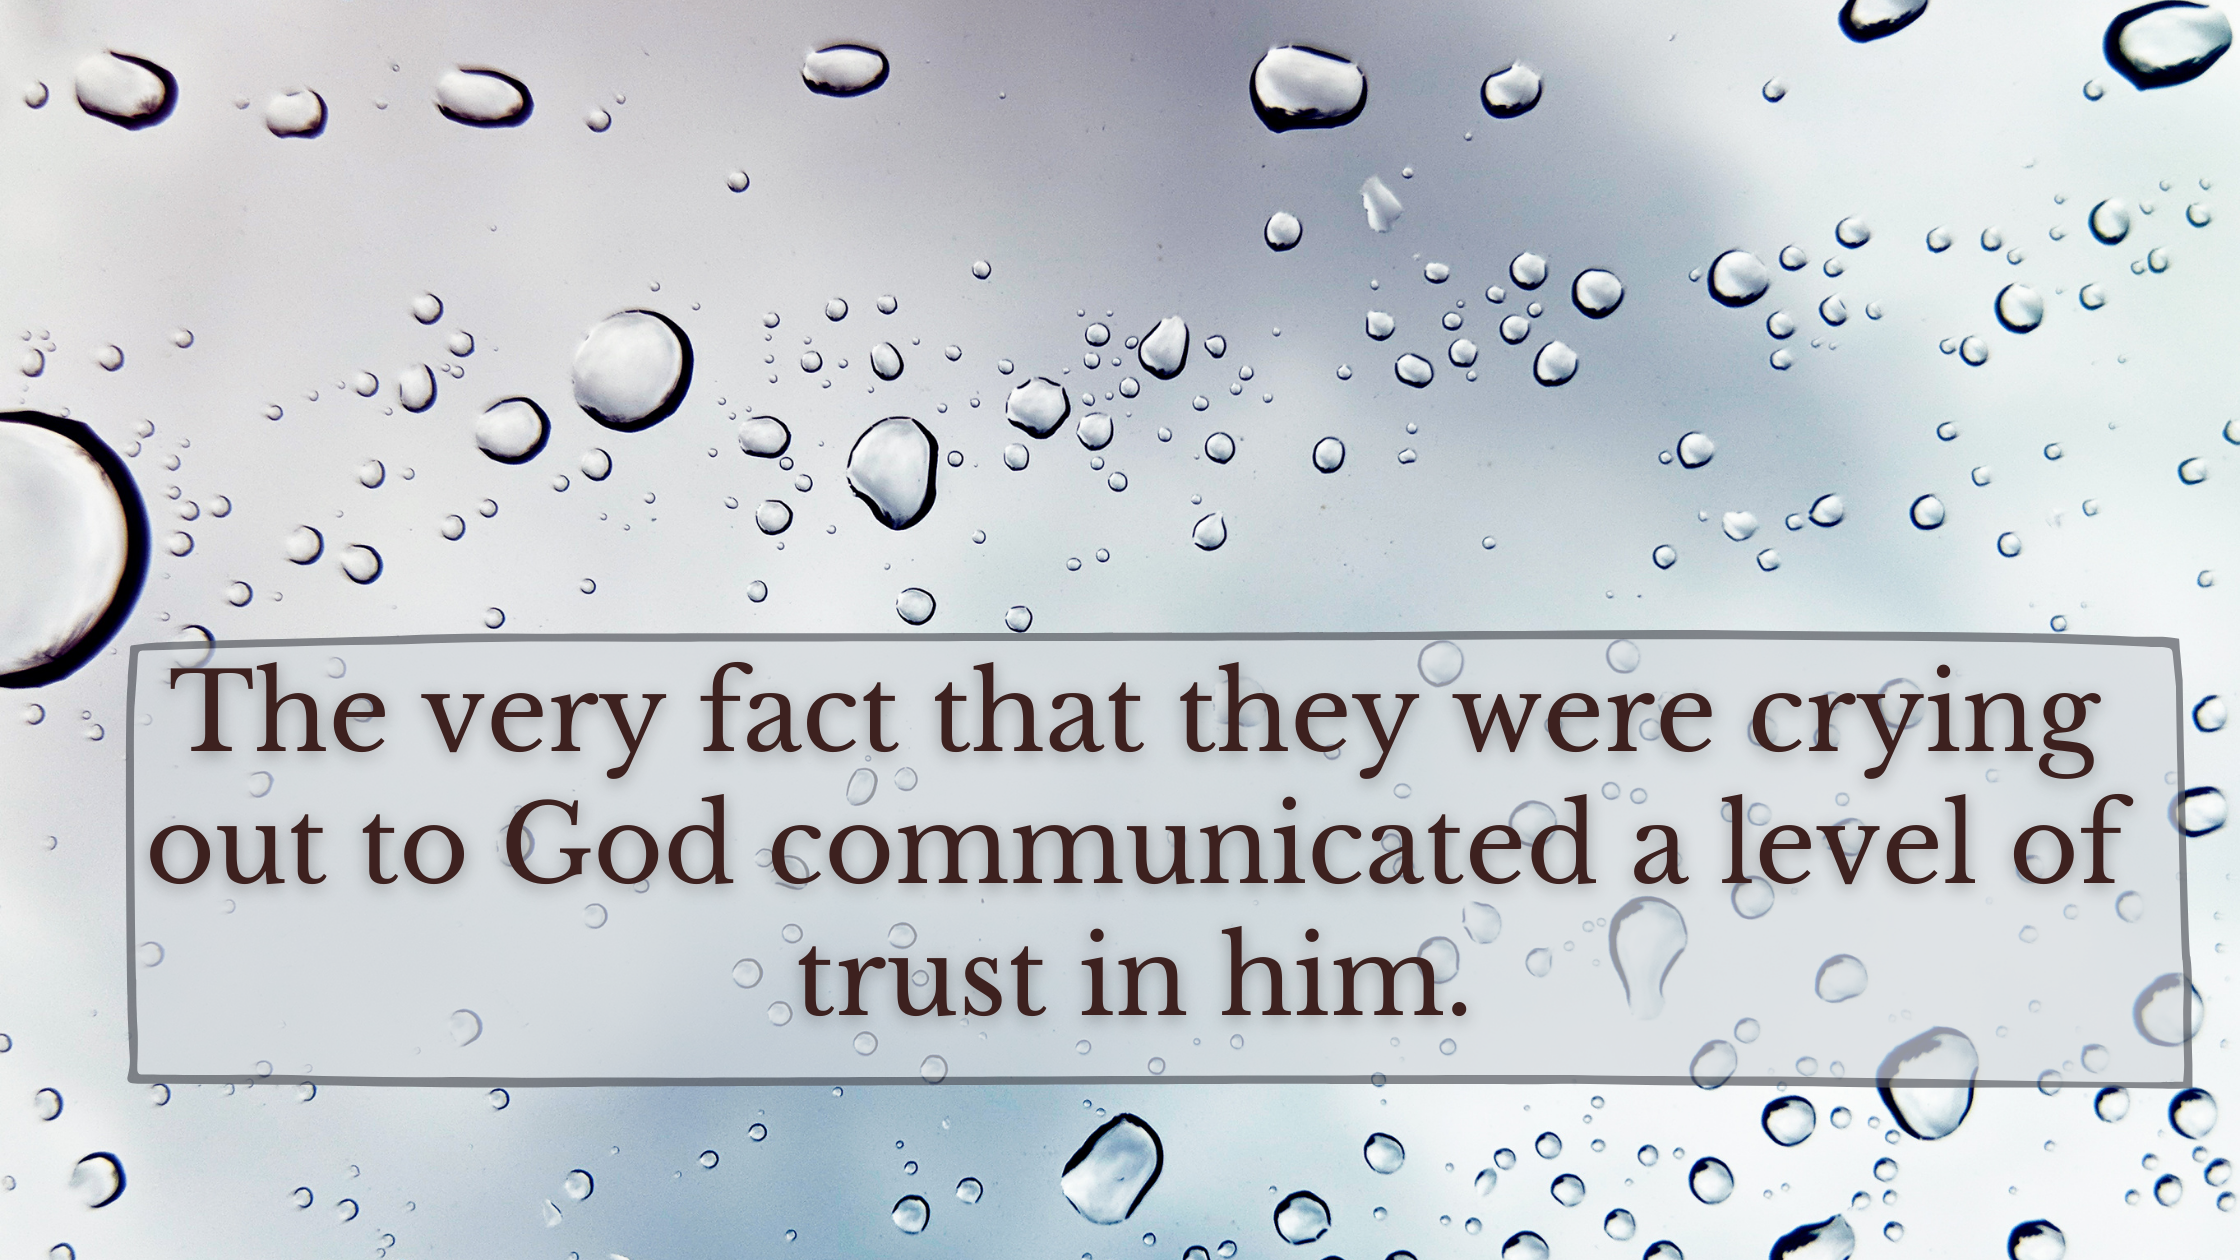 The very fact that they were crying out to God communicated a level of trust in him.